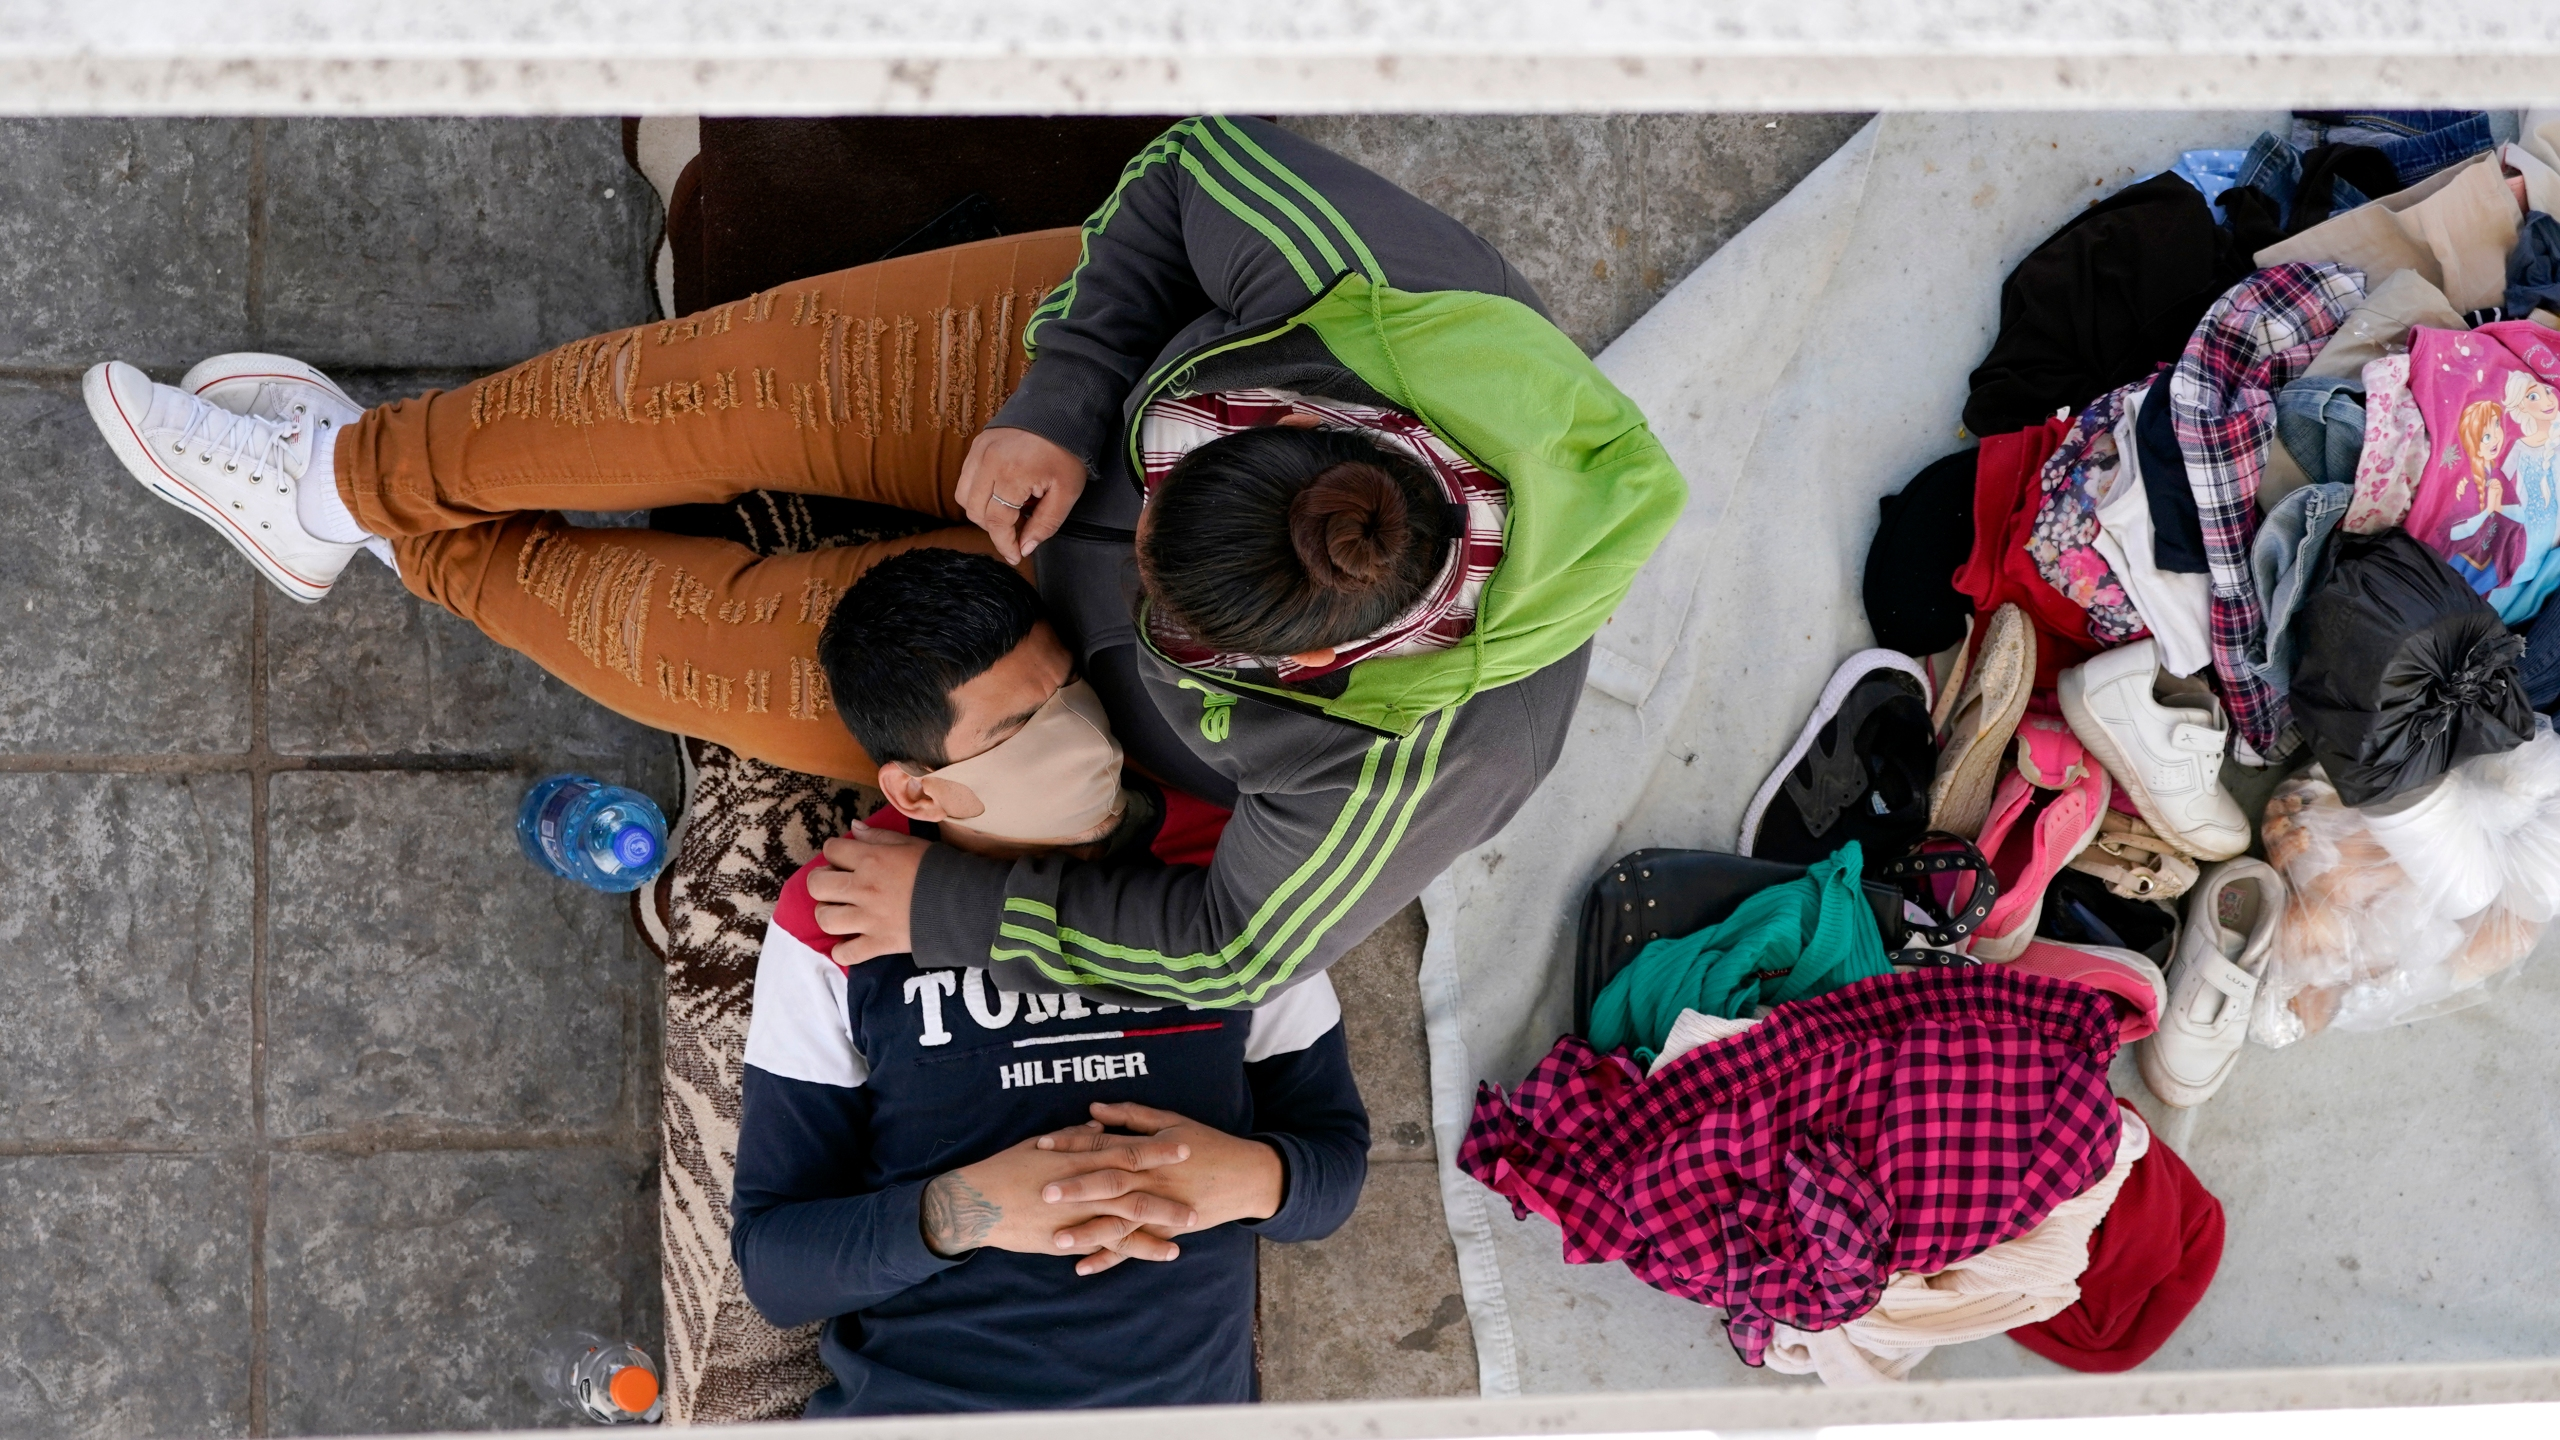 Migrants who were caught trying to cross into the U.S. and were deported rest under a ramp that leads to the McAllen-Hidalgo International Bridge in Reynosa, Mexico, on March 18, 2021. (Julio Cortez / Associated Press)